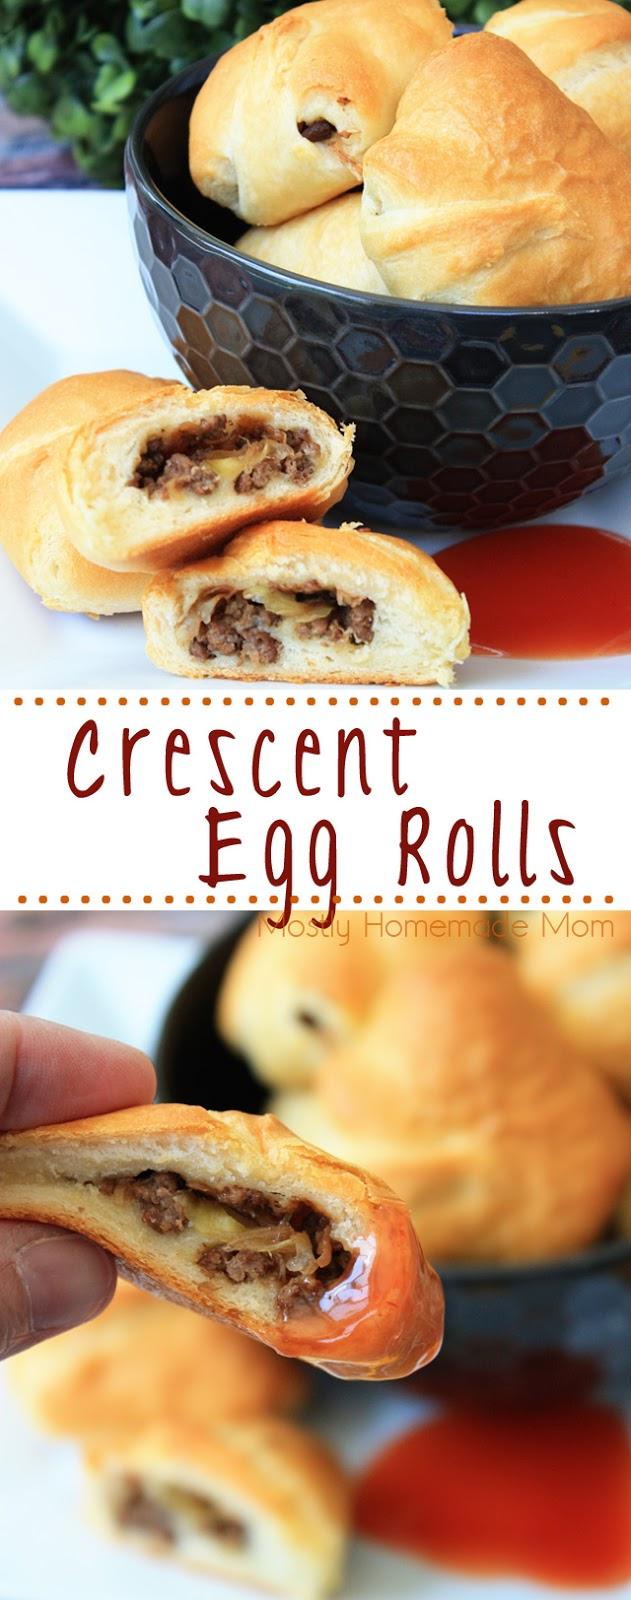 Egg Roll Crescent Rolls recipe